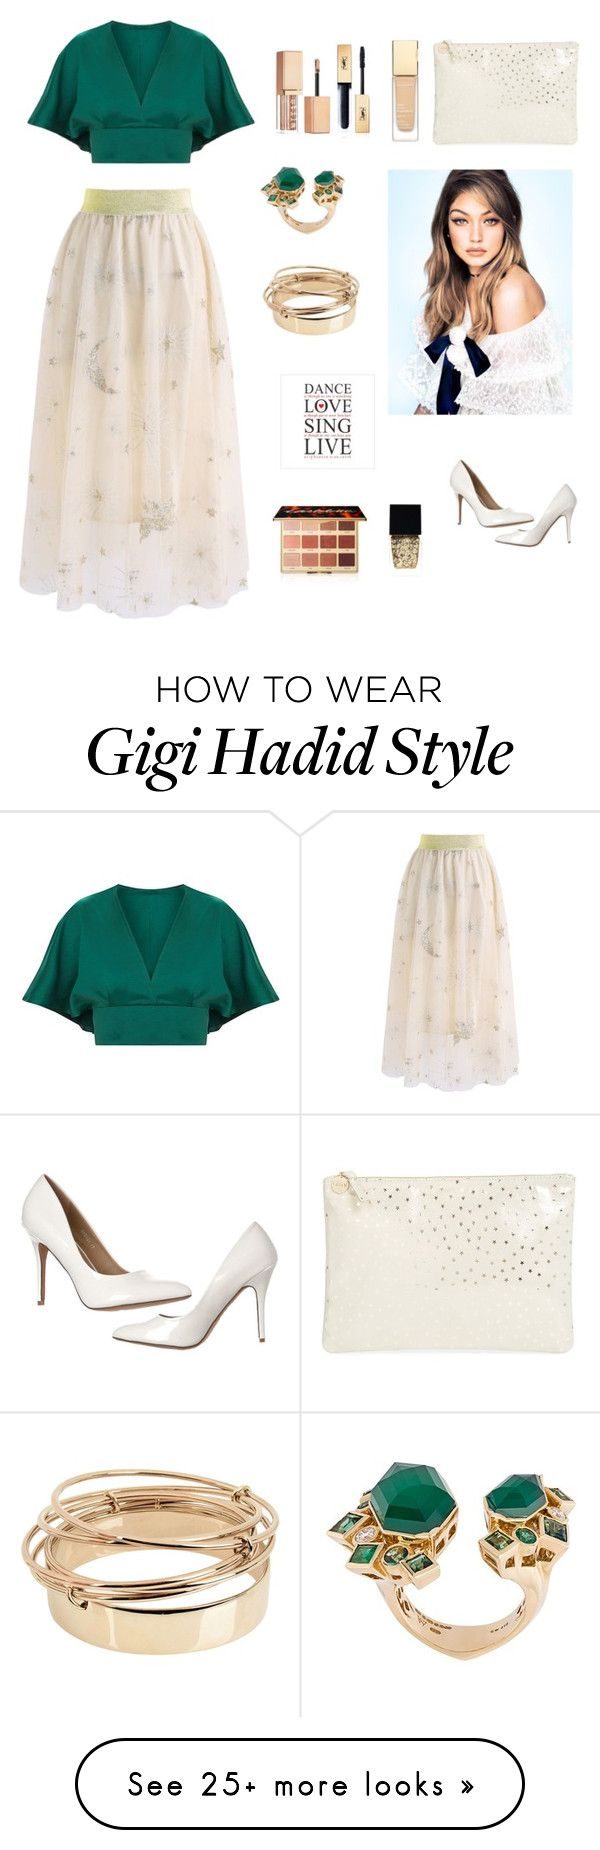 """Stars"" by ivanazb on Polyvore featuring Chicwish, Clare V., Stephen Webster, Valentino, Yves Saint Laurent, tarte, Witchery and Stila"